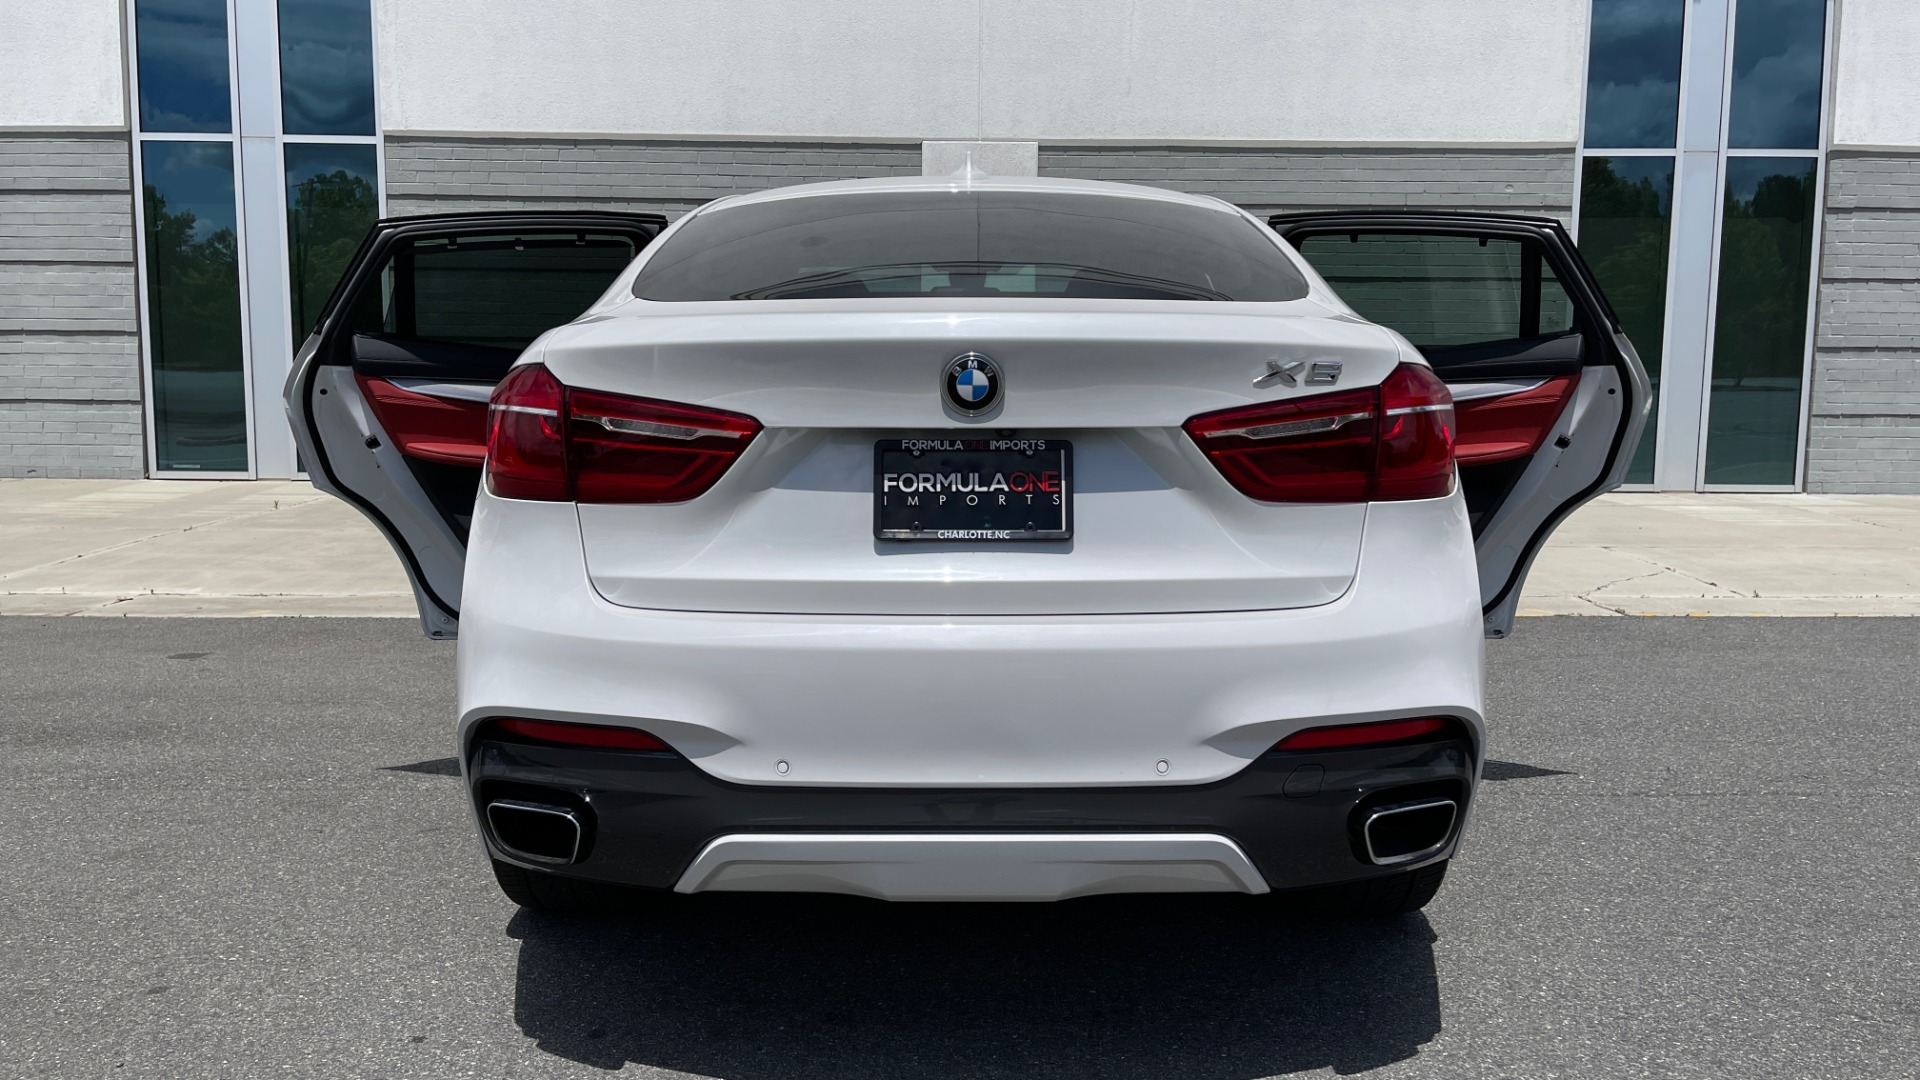 Used 2018 BMW X6 XDRIVE35I M-SPORT / NAV / DRVR ASST PLUS / ADAPT M-SUSP / REARVIEW for sale Sold at Formula Imports in Charlotte NC 28227 26